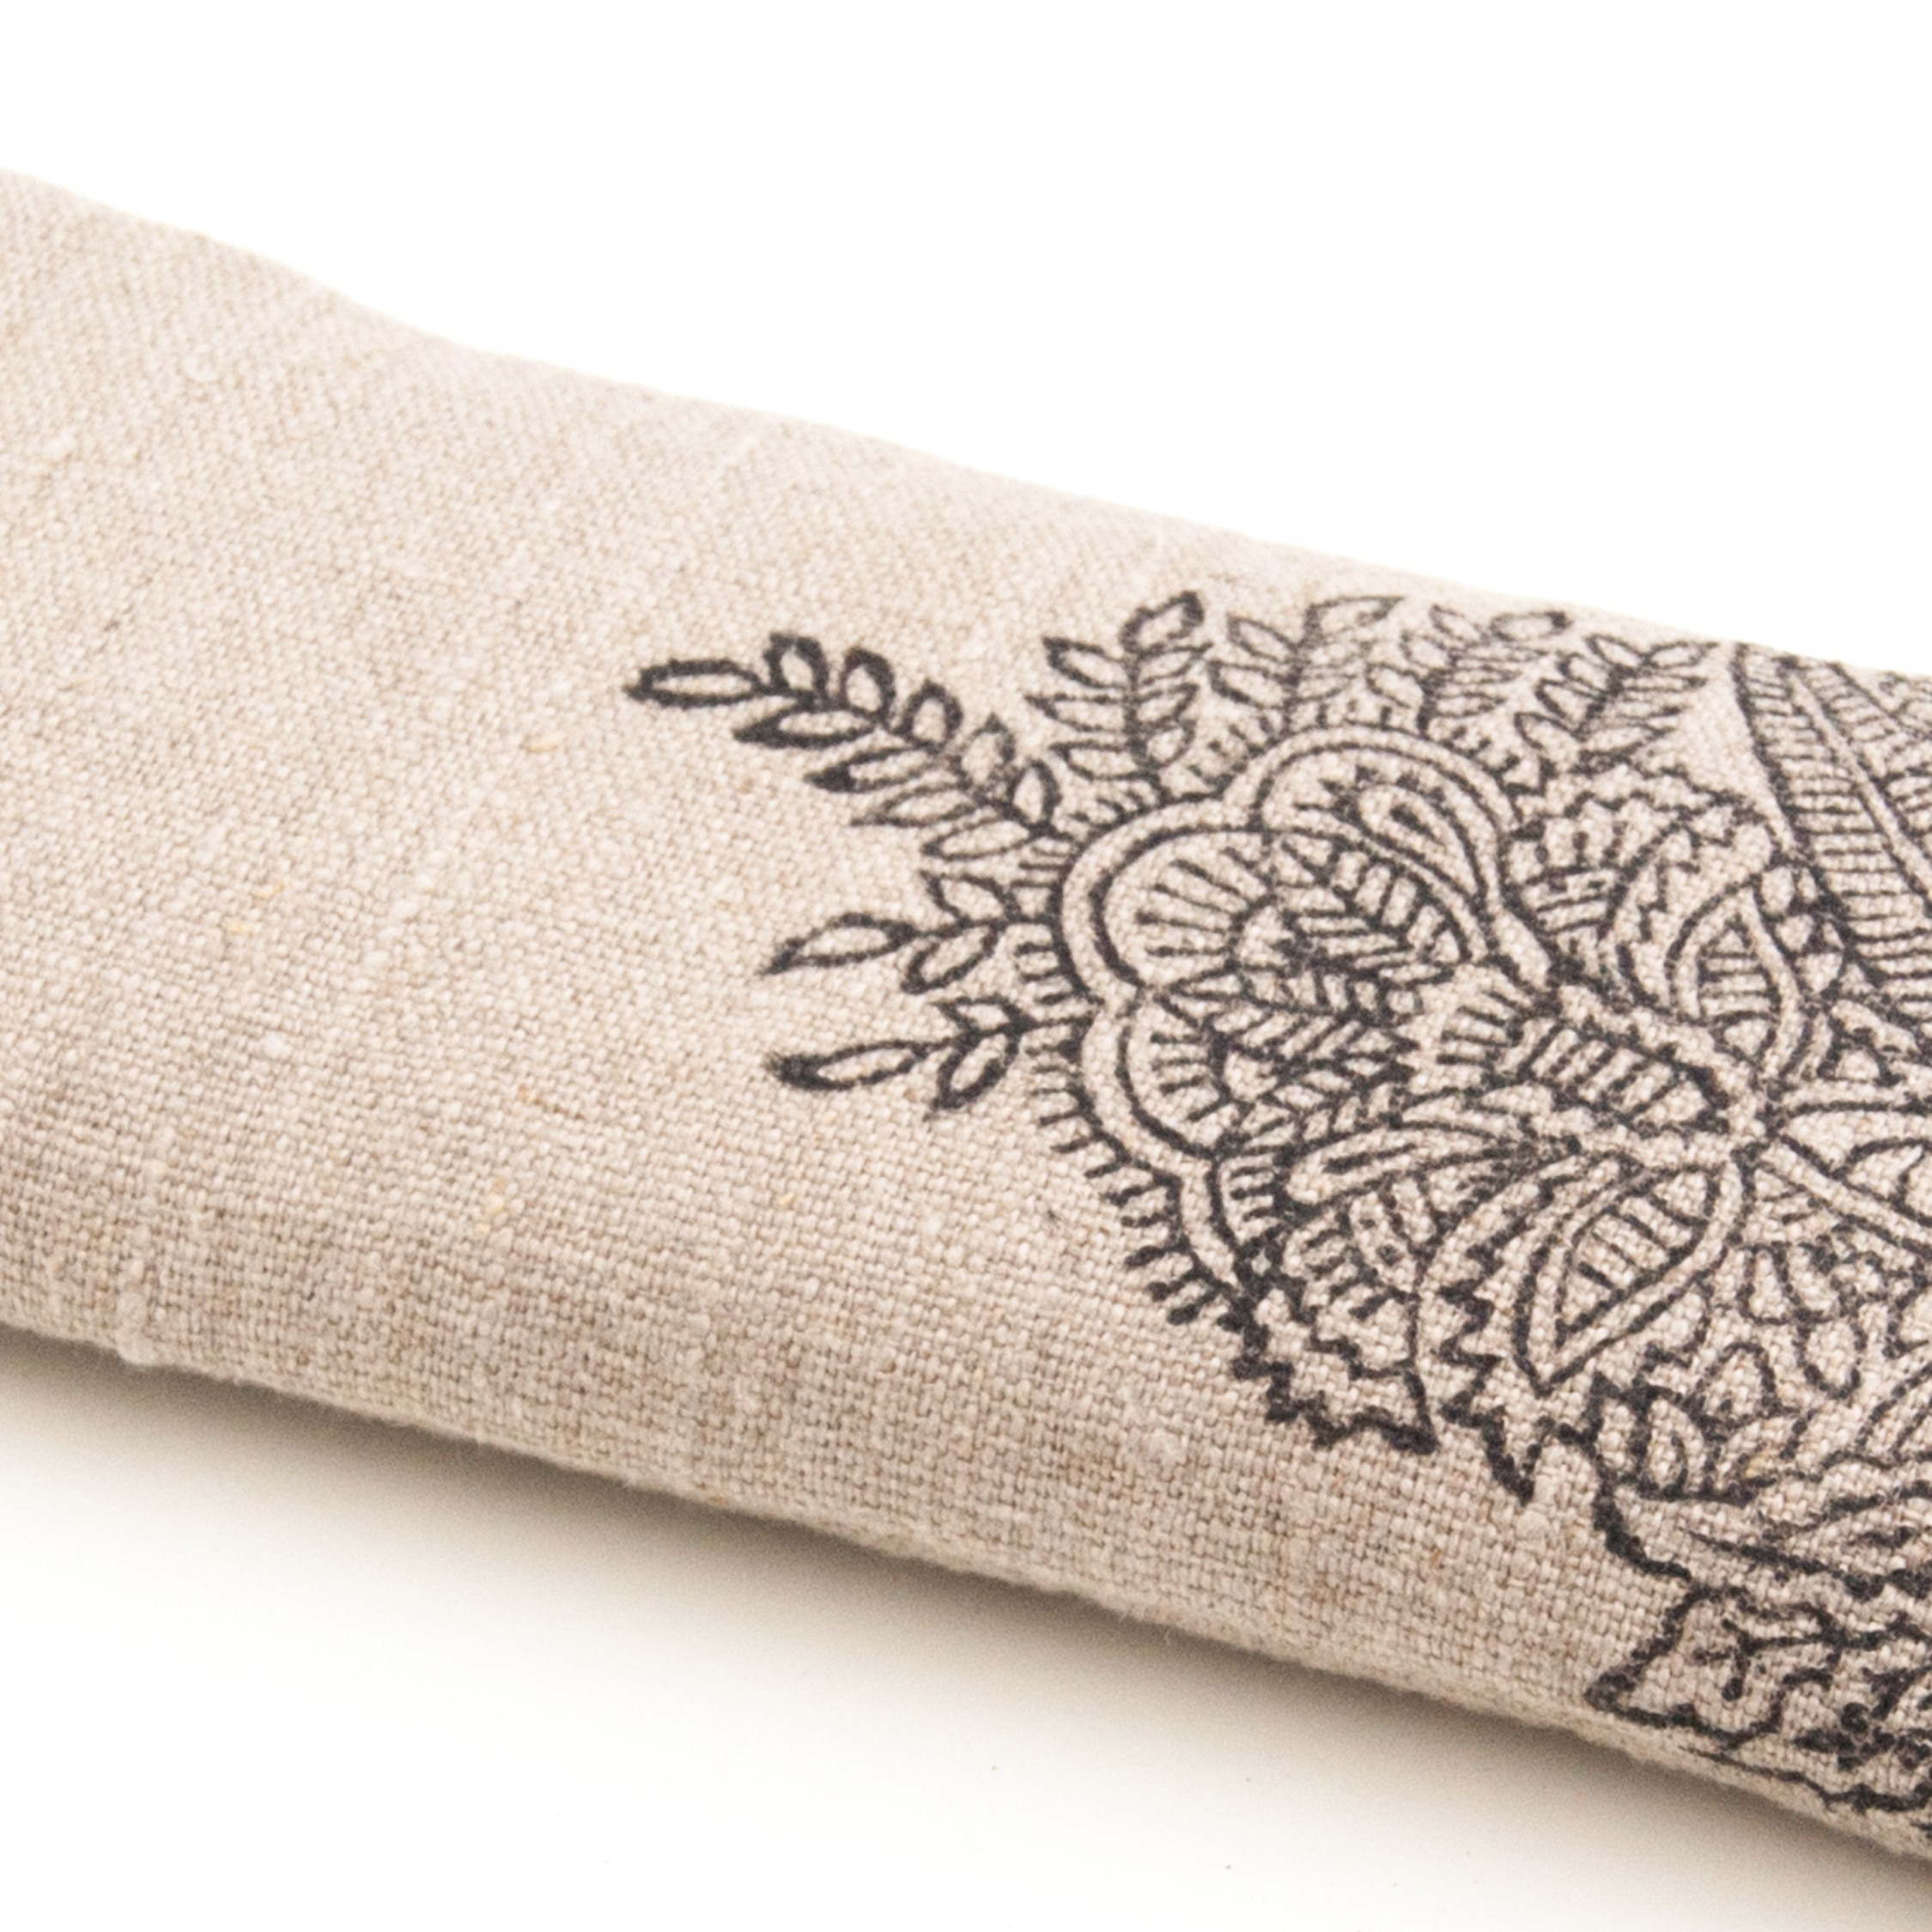 Amethyst filled eye pillow by Pure Prana Label